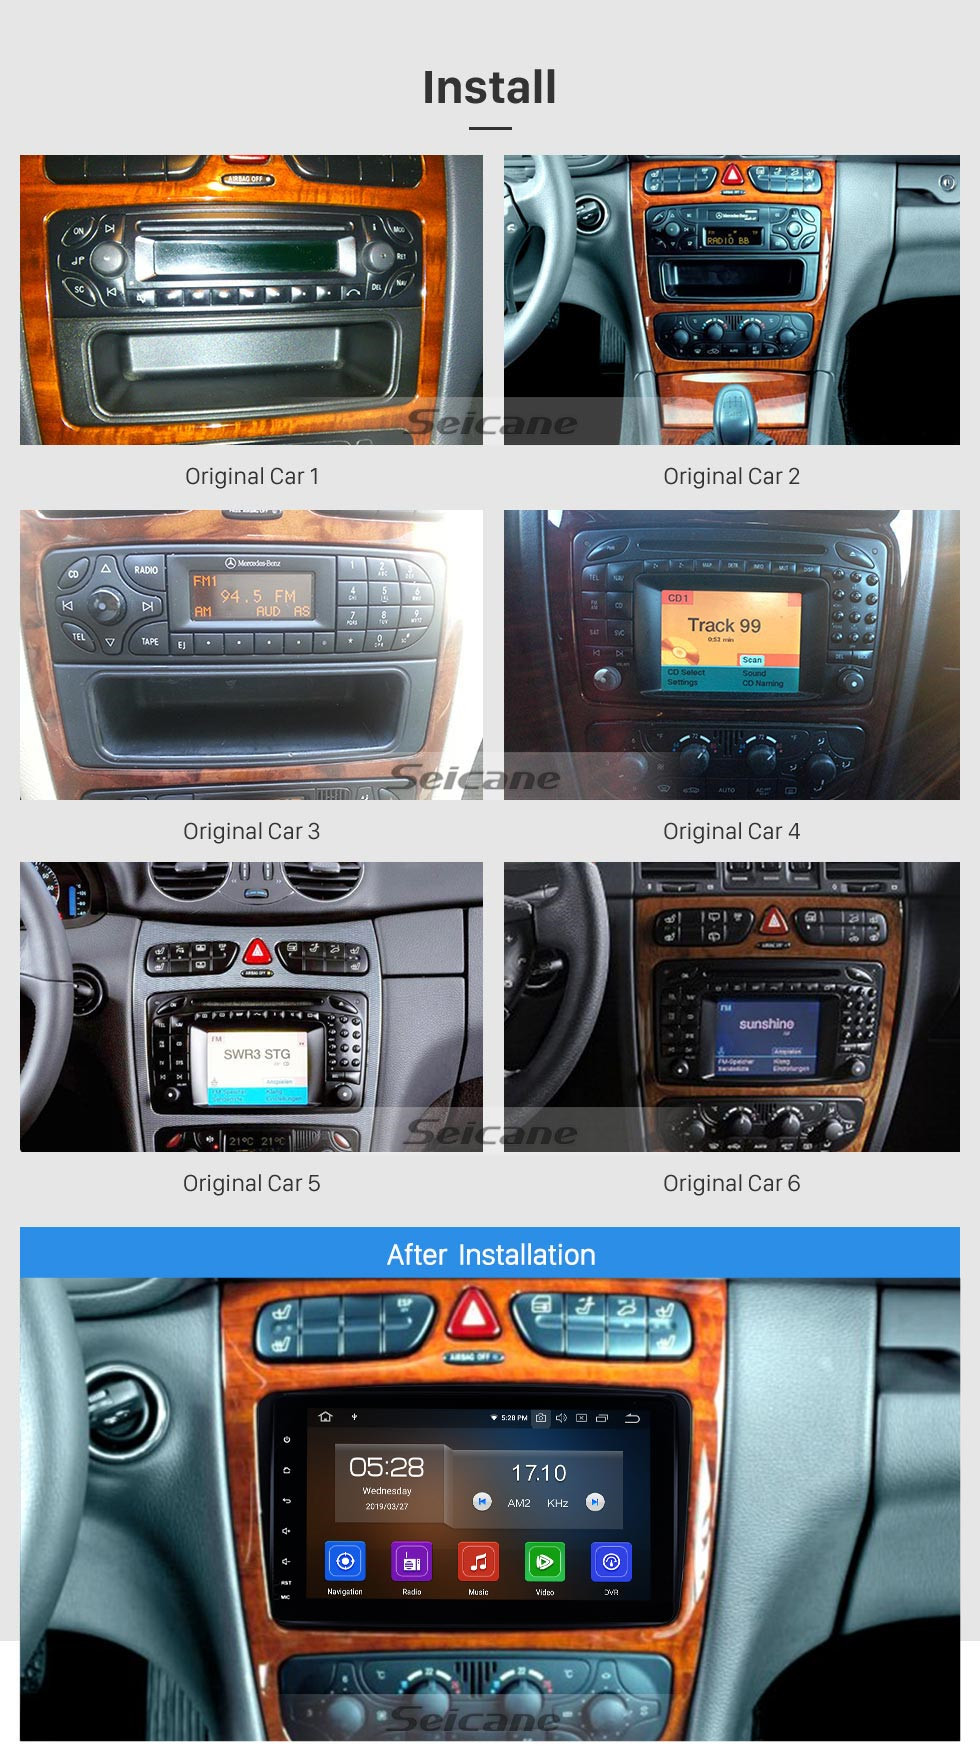 Seicane In dash Radio 1998-2004 Mercedes-Benz G Class W463 G550 G500 G400 G320 G270 G55 Android 9.0 GPS Navigation Bluetooth WIFI 1080P USB Audio system Support Backup Camera DVR OBD2 TPMS